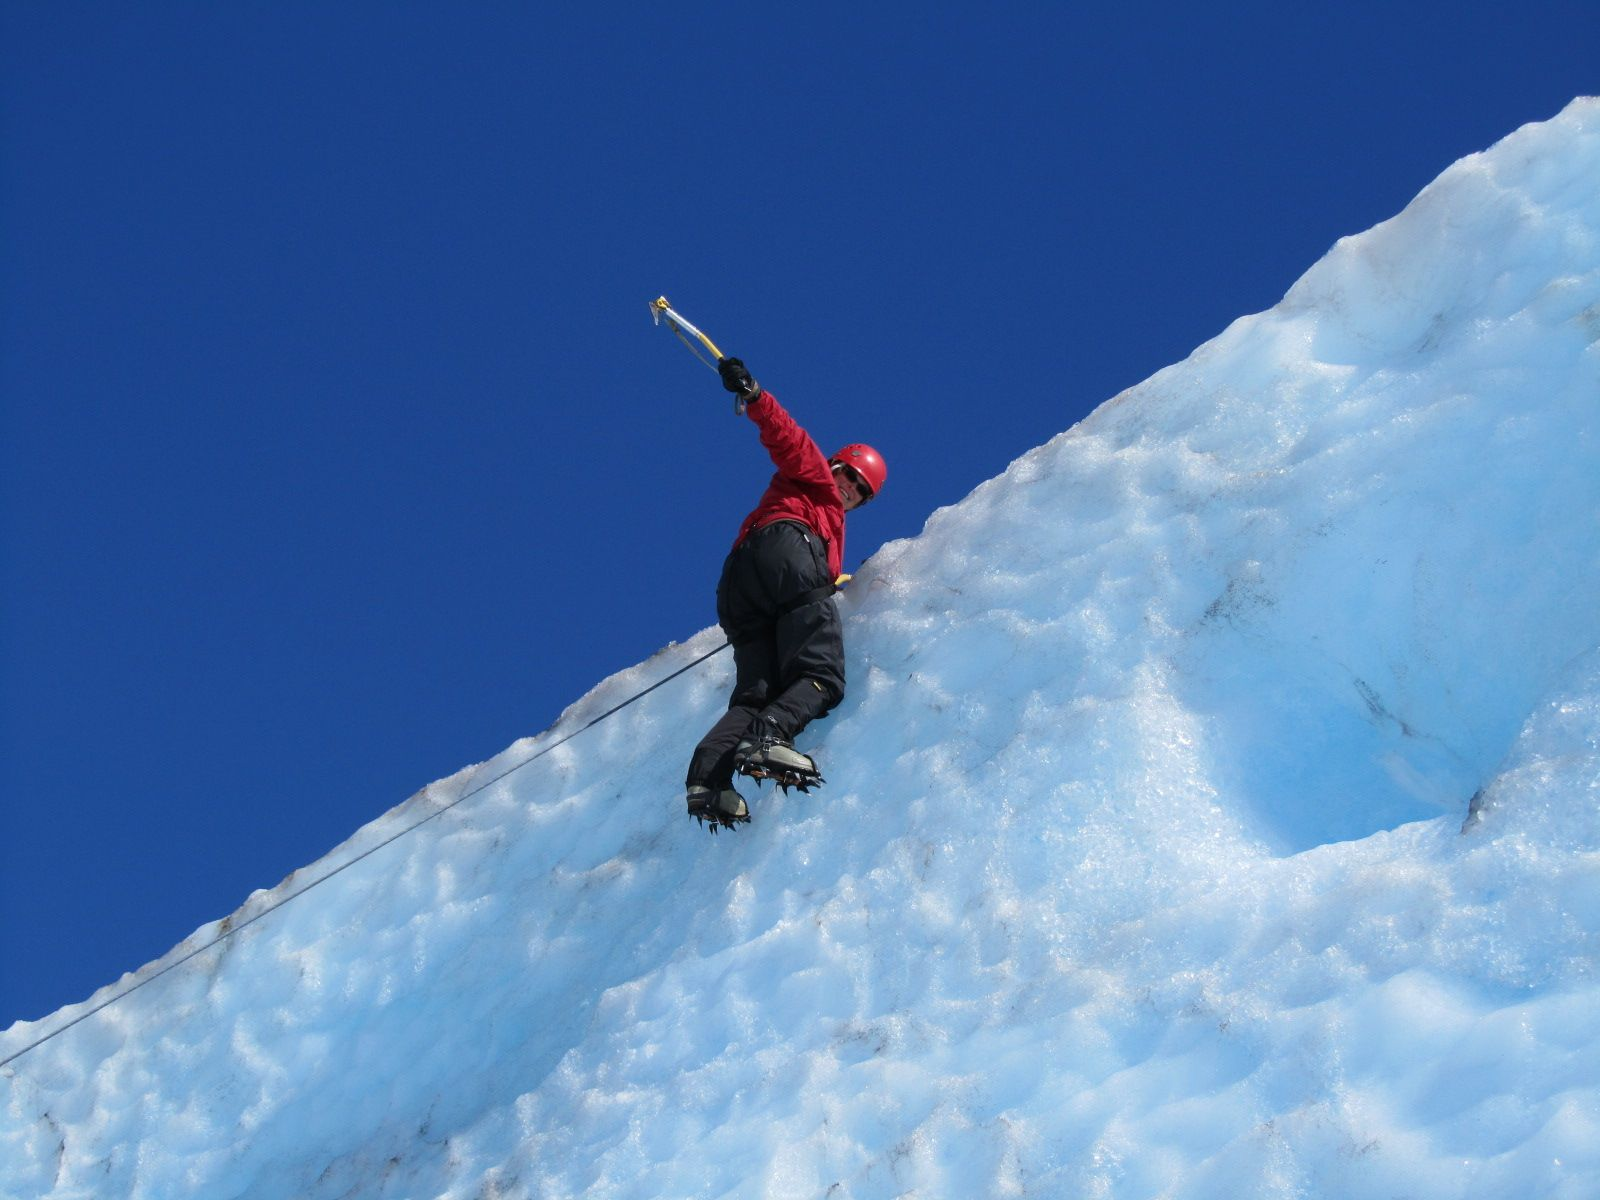 Ice Climbing Mendenhall Glacier AK  copyrighted 2014 Dark Woods Studios, Ltd. Co. dwoodstudio.com